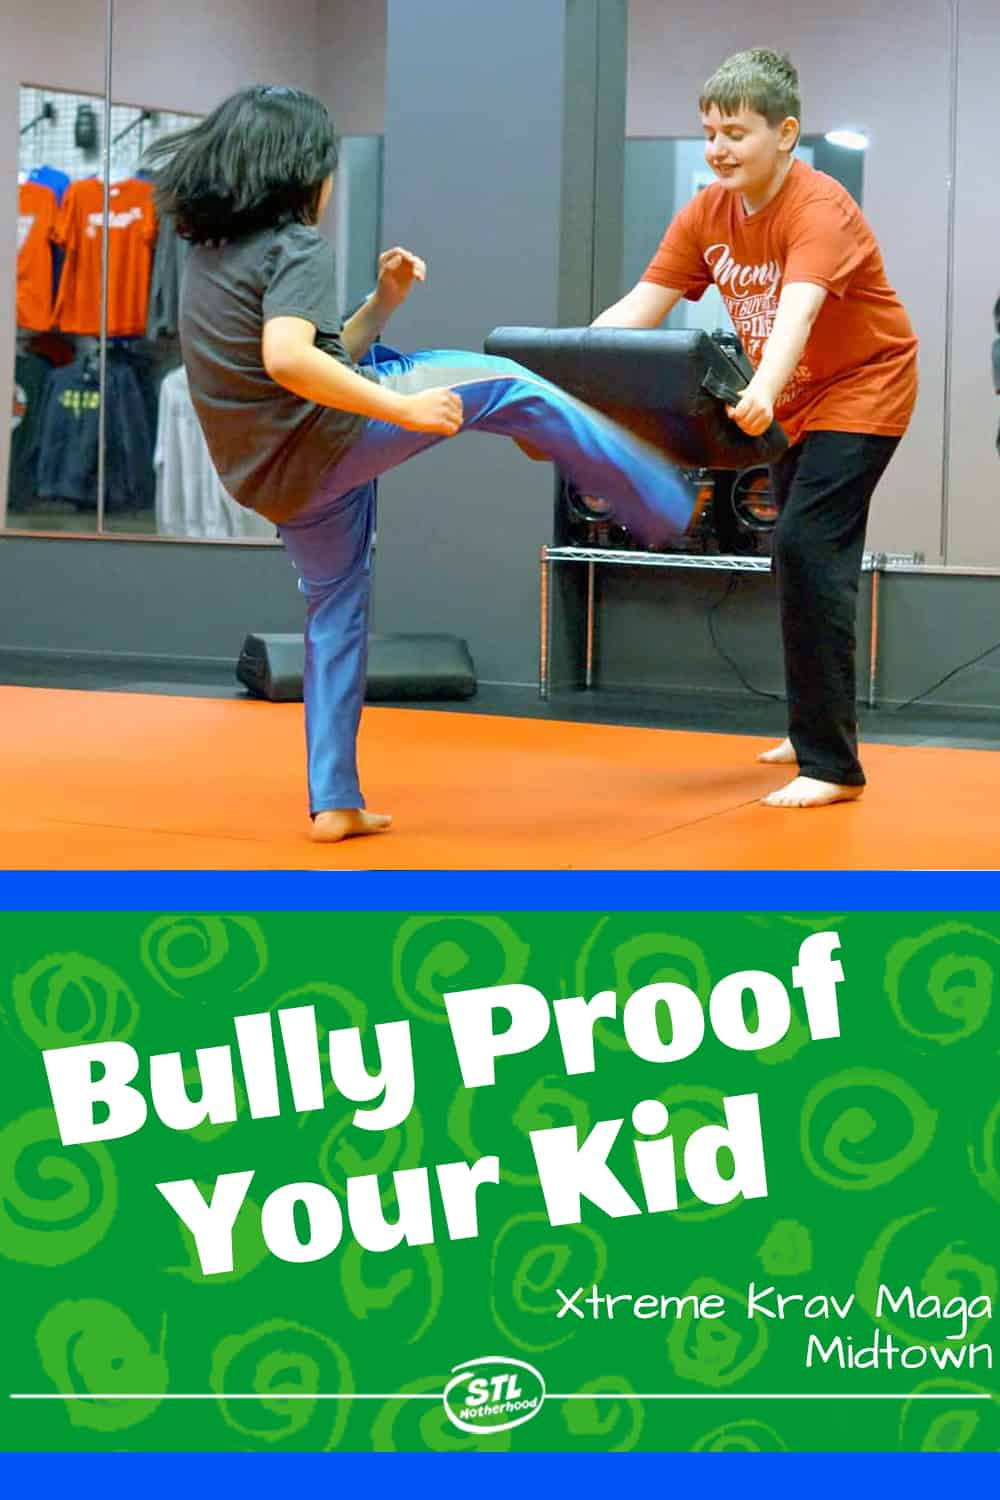 Bully proof your kid with confidence and practical skills.